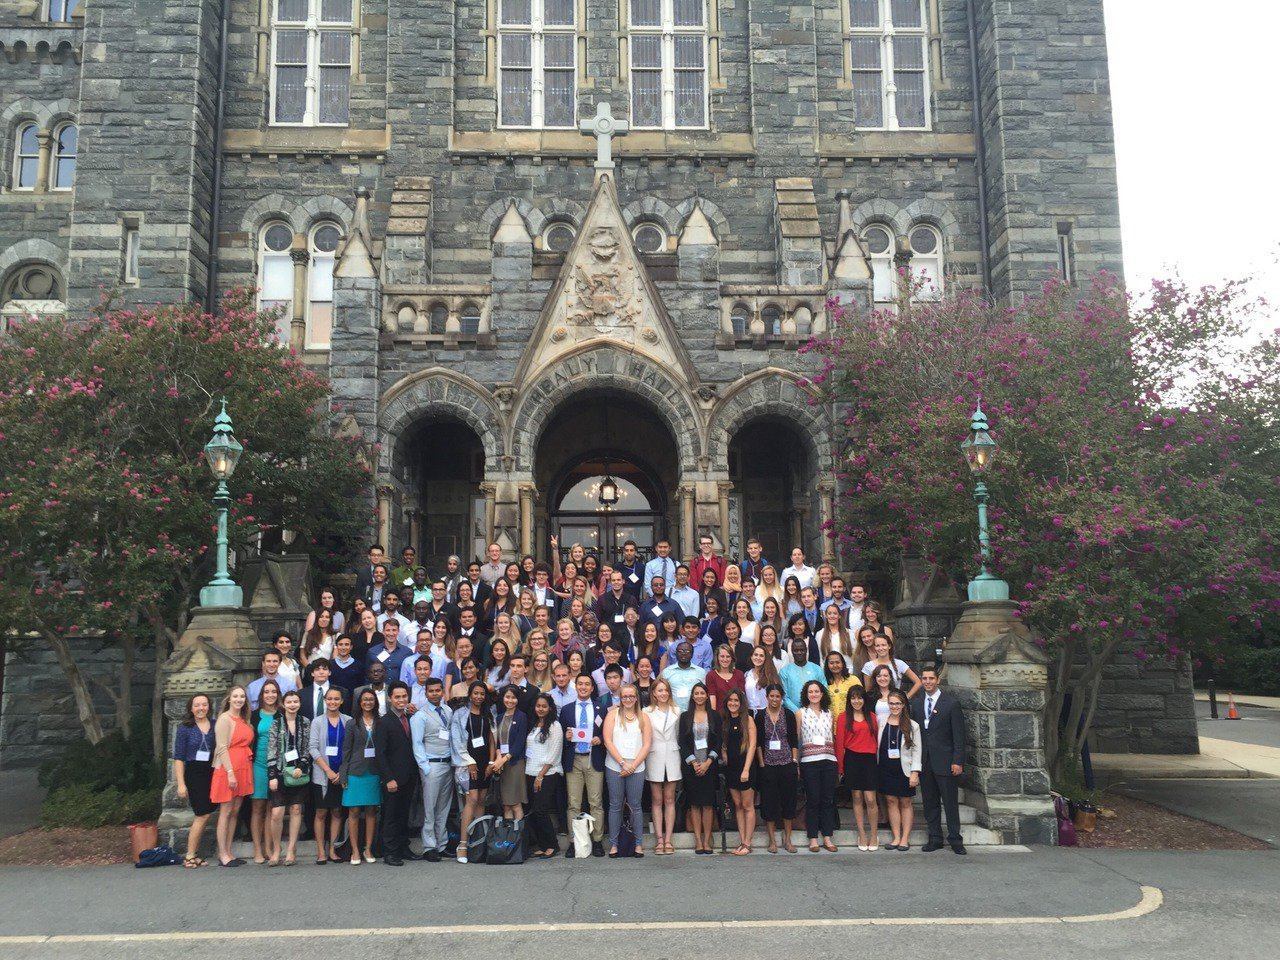 Group of students pose in front of stately academic building